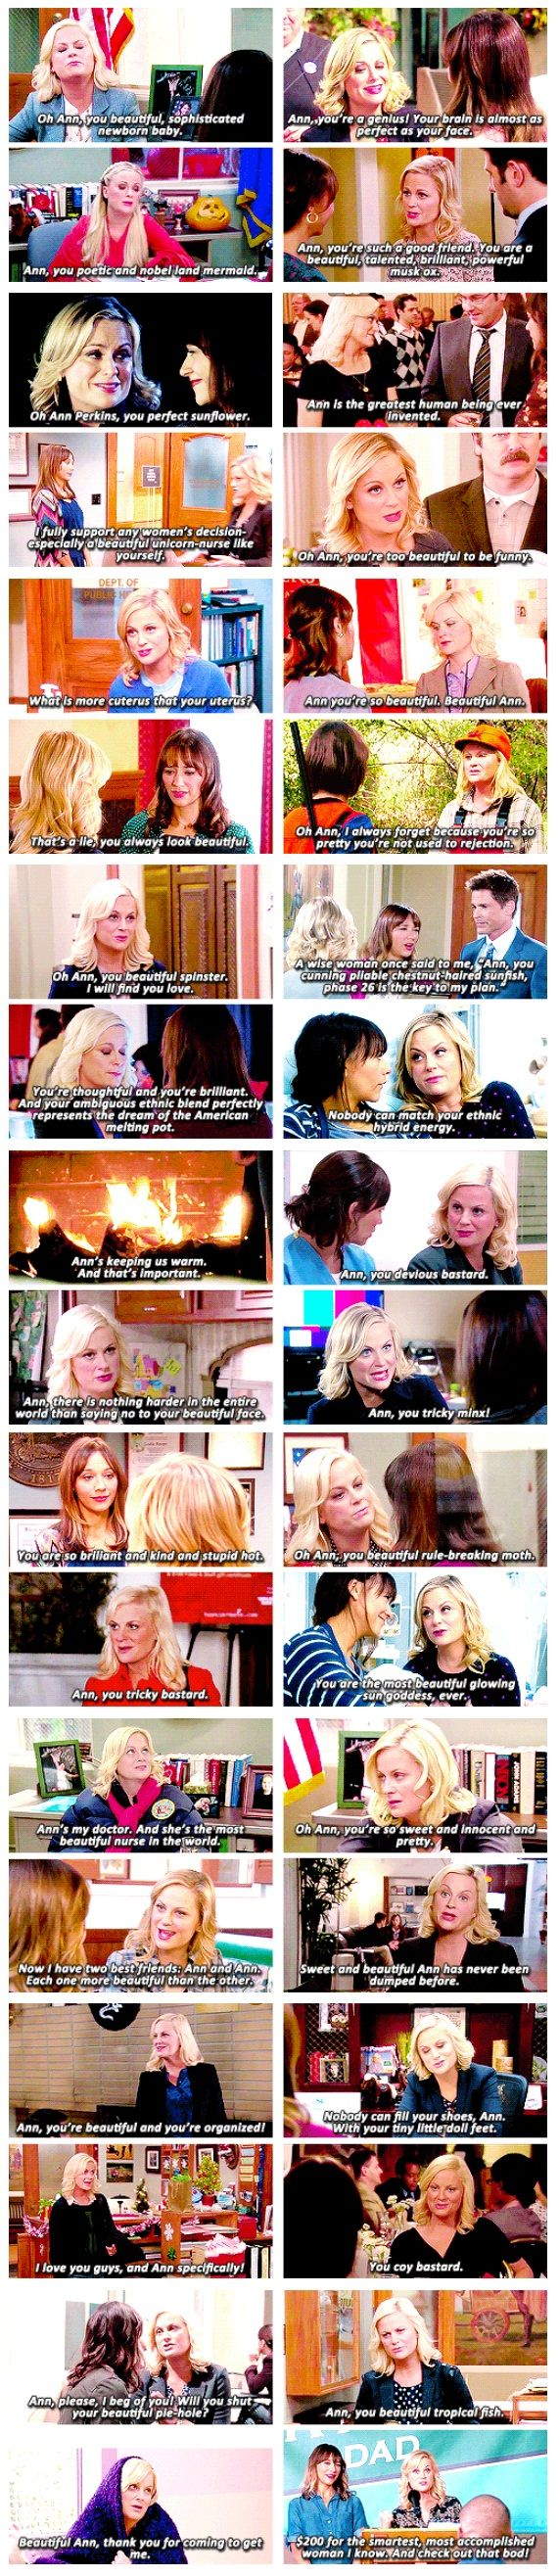 All of Leslie's compliments to Ann. (Parks and Recreation)